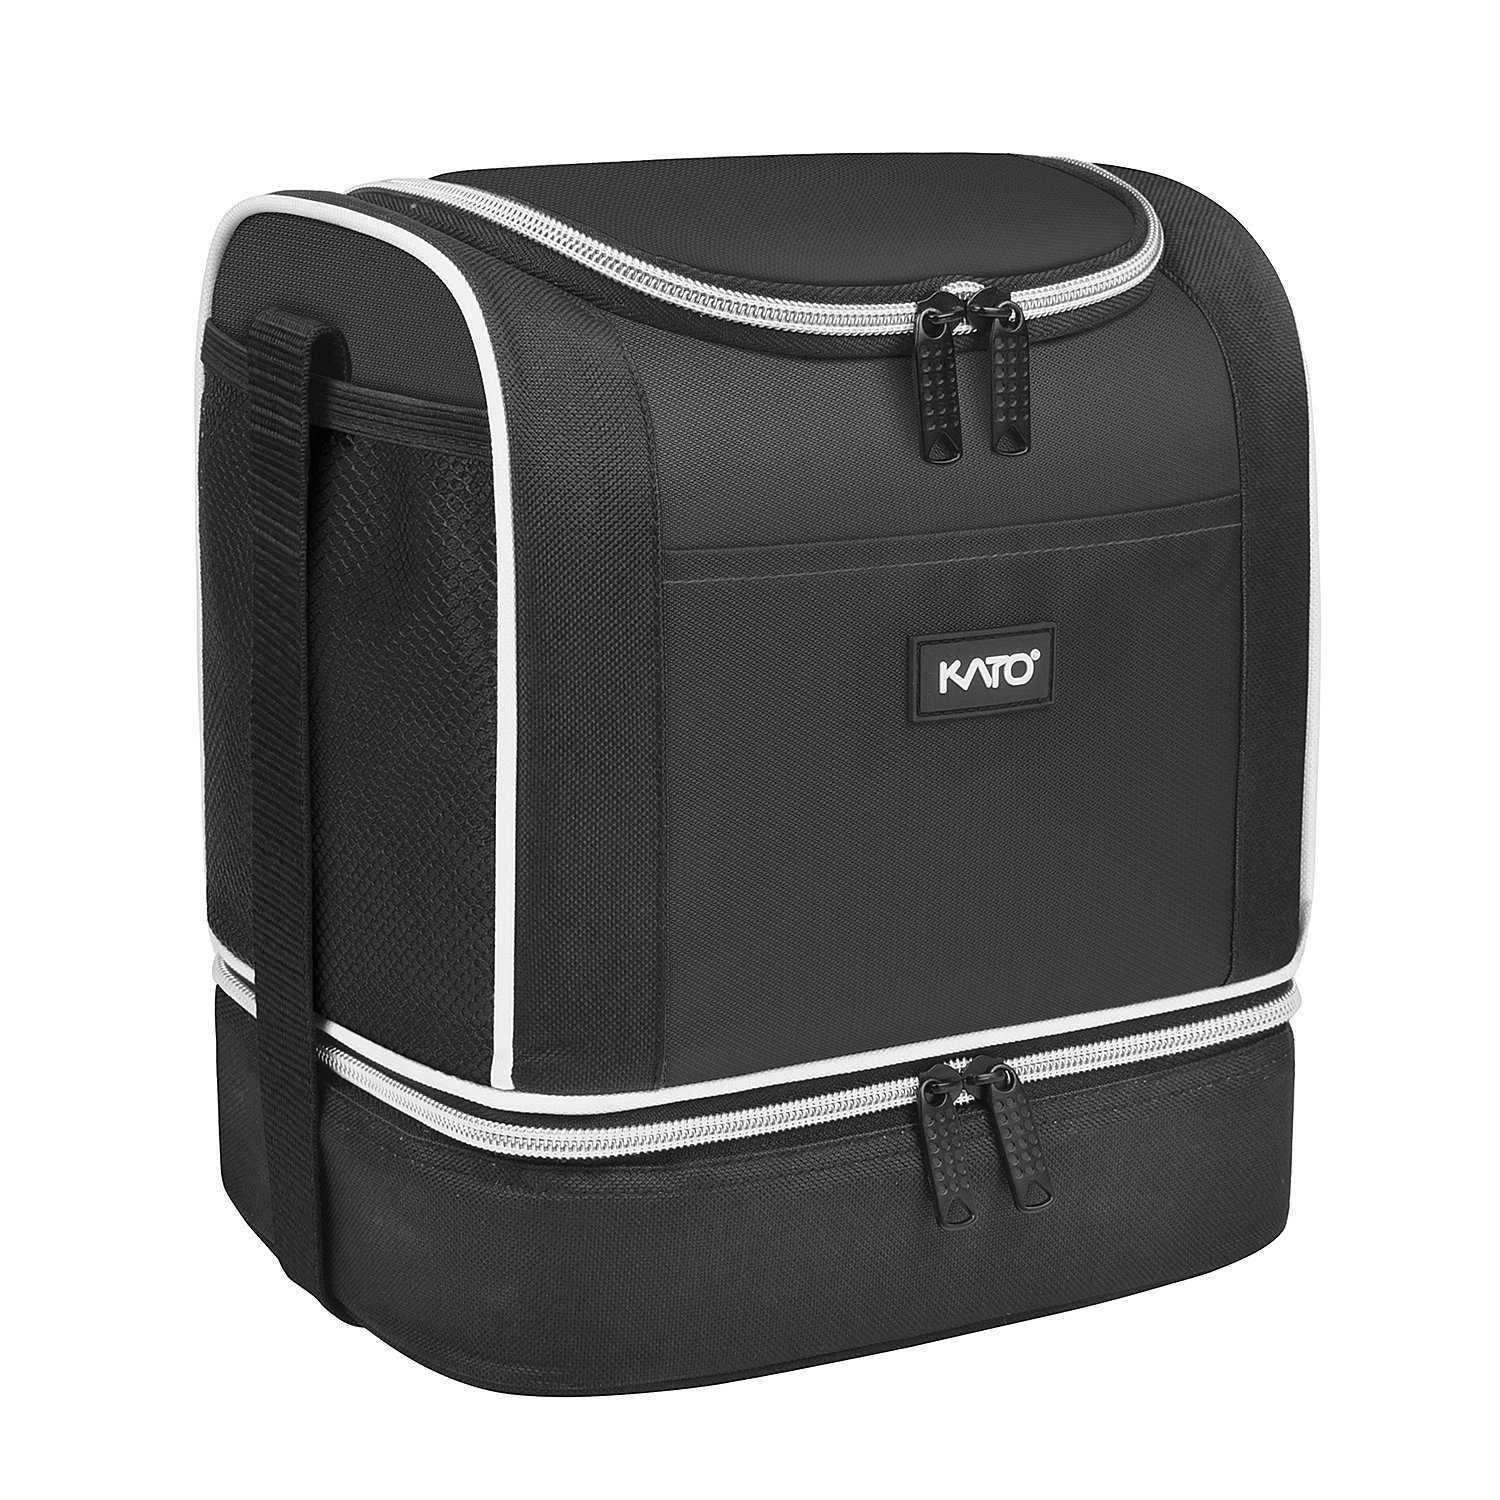 Kato Insulated Lunch Bag, Dual Compartment Portable Bento Cooler Totes for Men and Women, Black